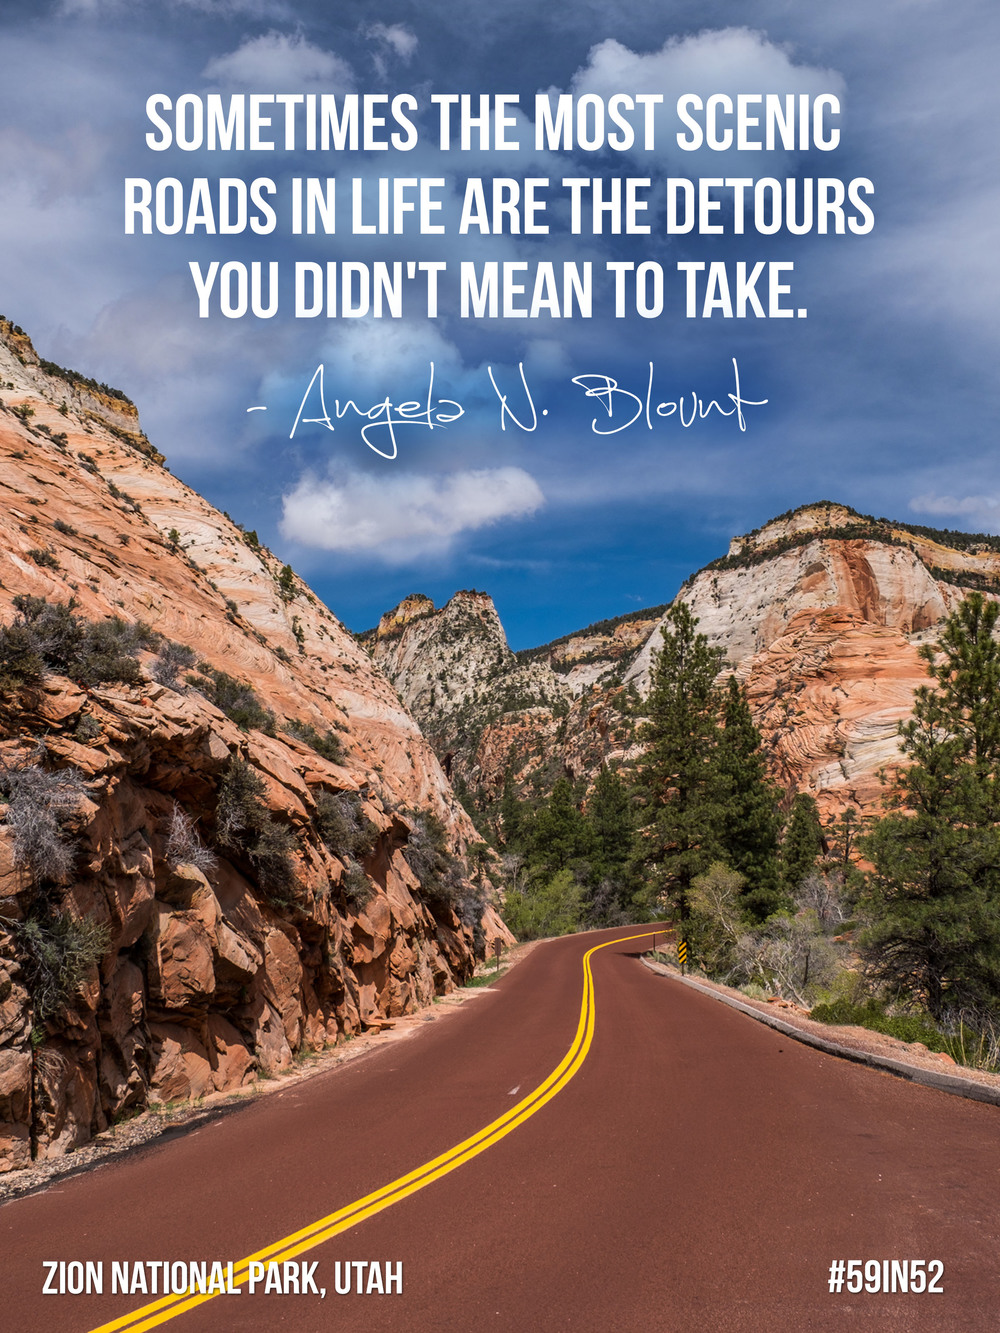 """Sometimes the most scenic roads in life are the detours you didn't mean to take."" - Angela N. Blount"